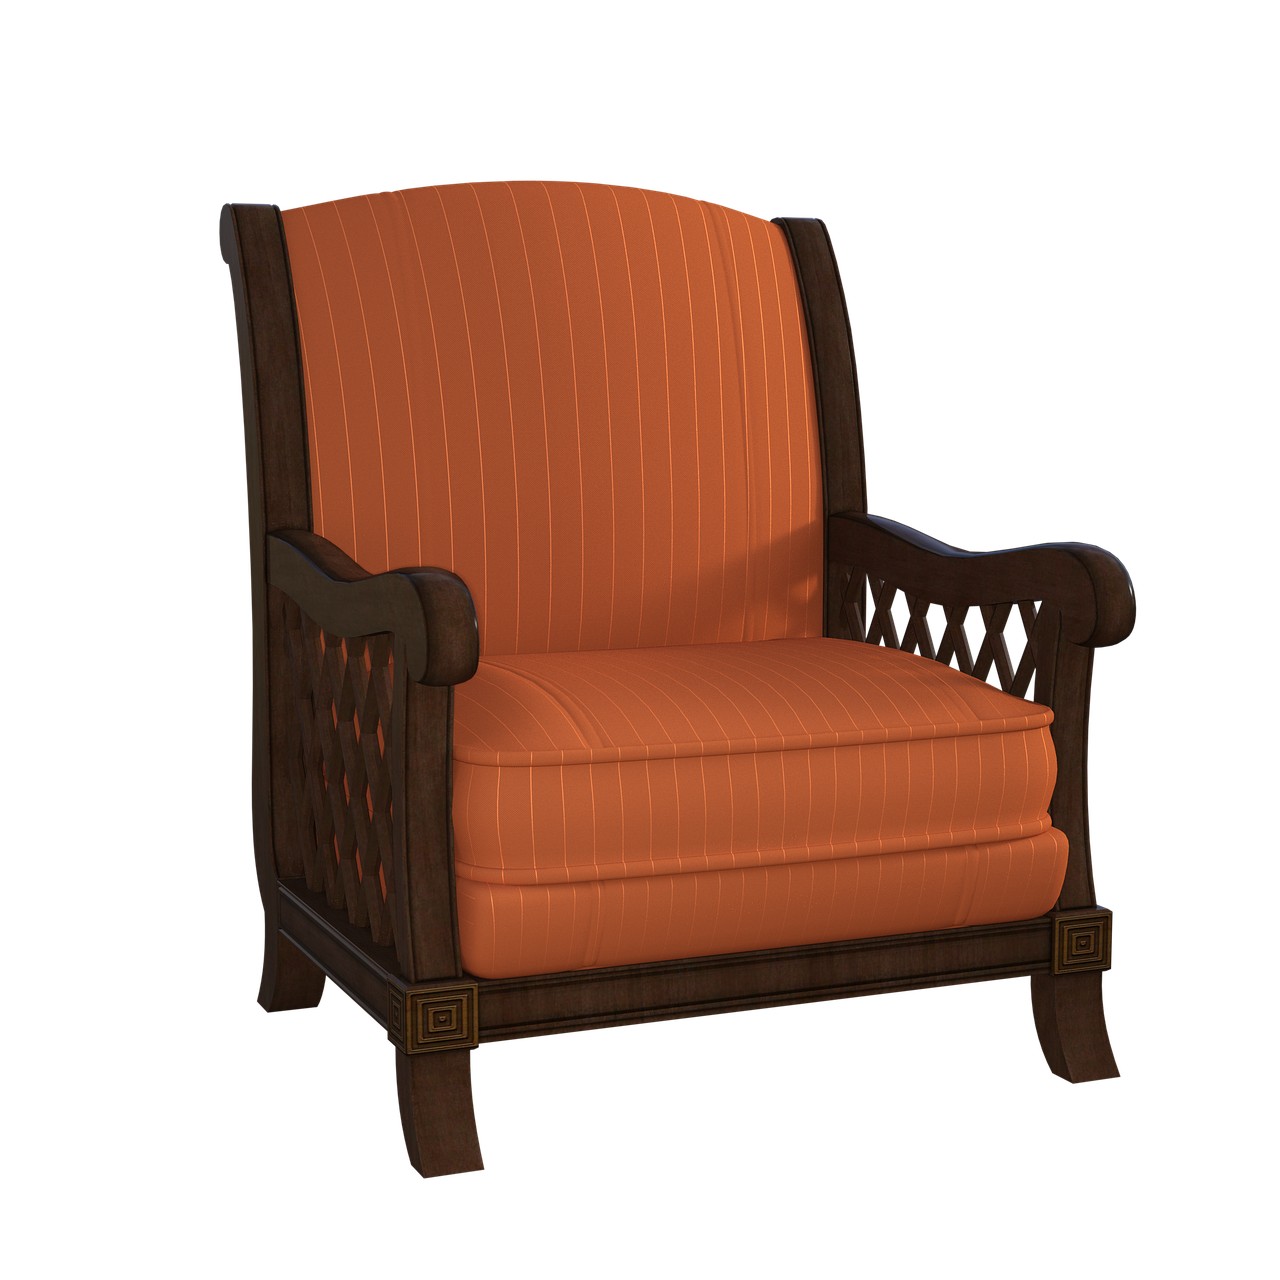 comfy-chair-4608886_1280.png